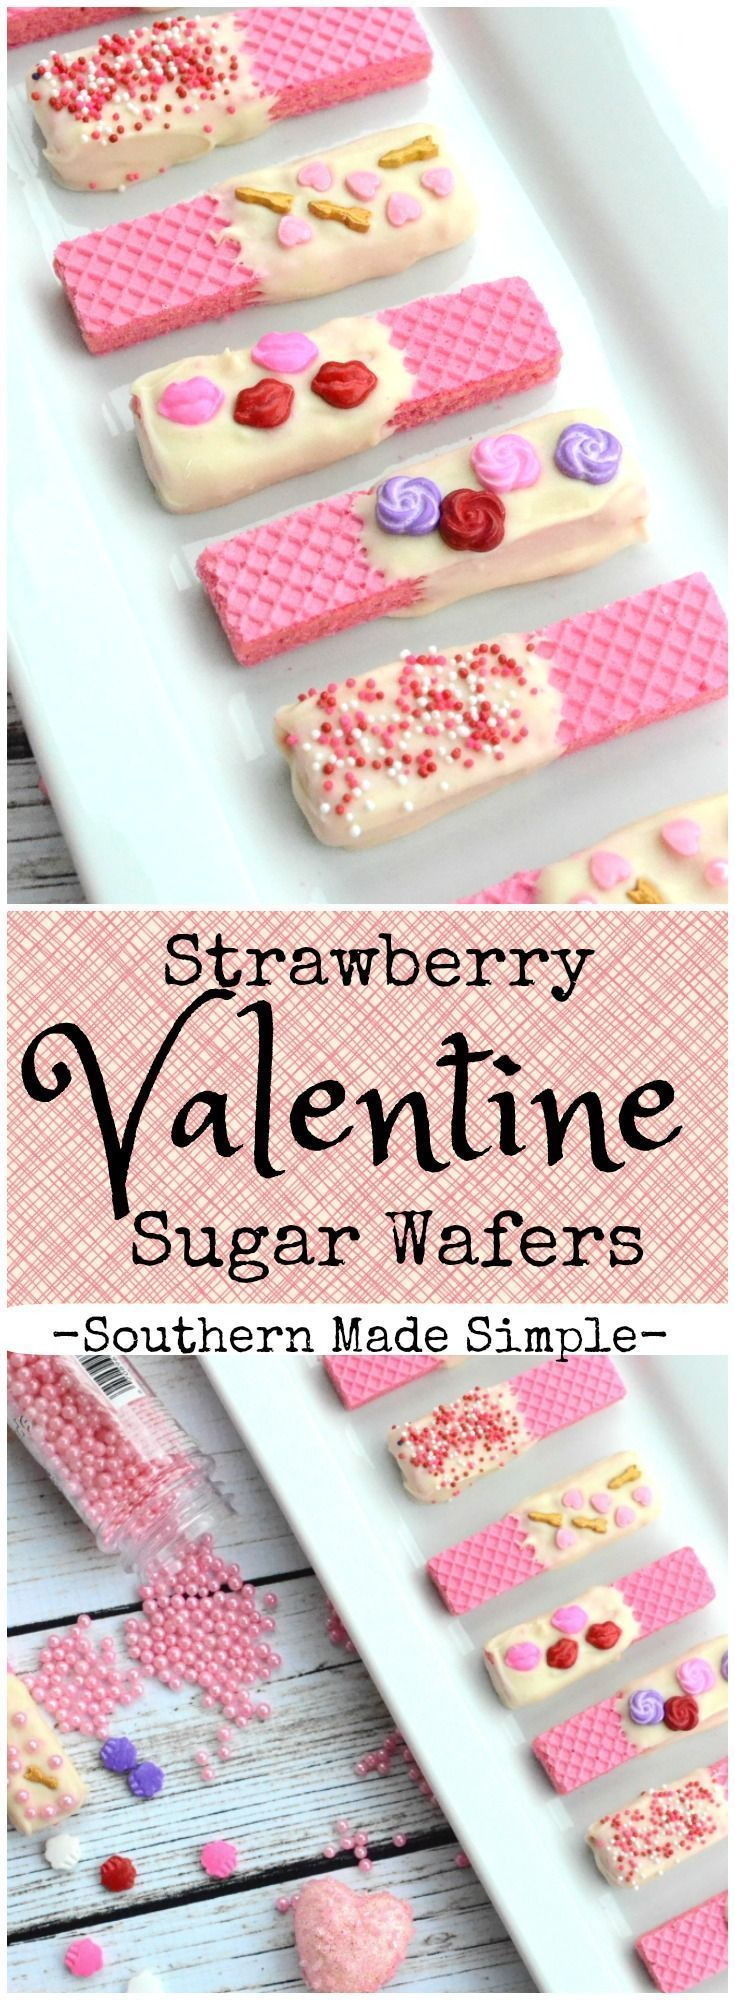 Looking for a quick, easy and delicious little Valentine treat to share with others? These strawberry white chocolate dipped sugar wafers are super fun and totally delish!